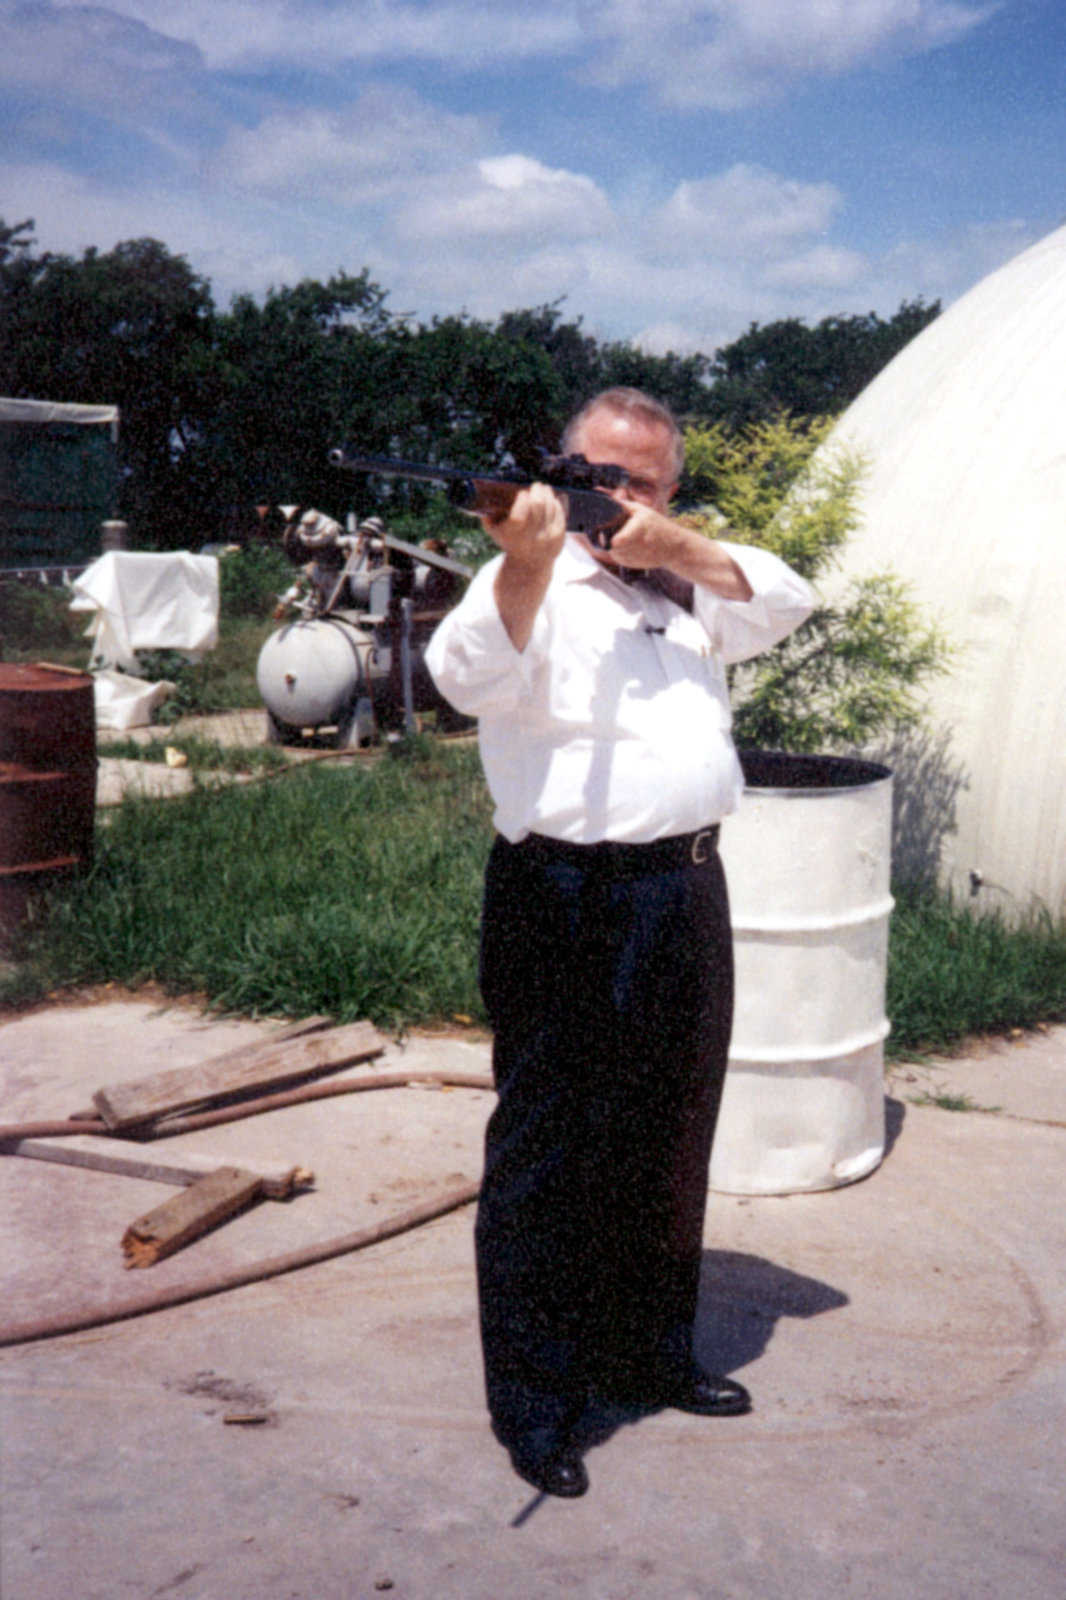 David B. South takes aim at a dome with his .30-06 rifle during a bulletproof demonstration for a Dallas TV station in the late '90s.